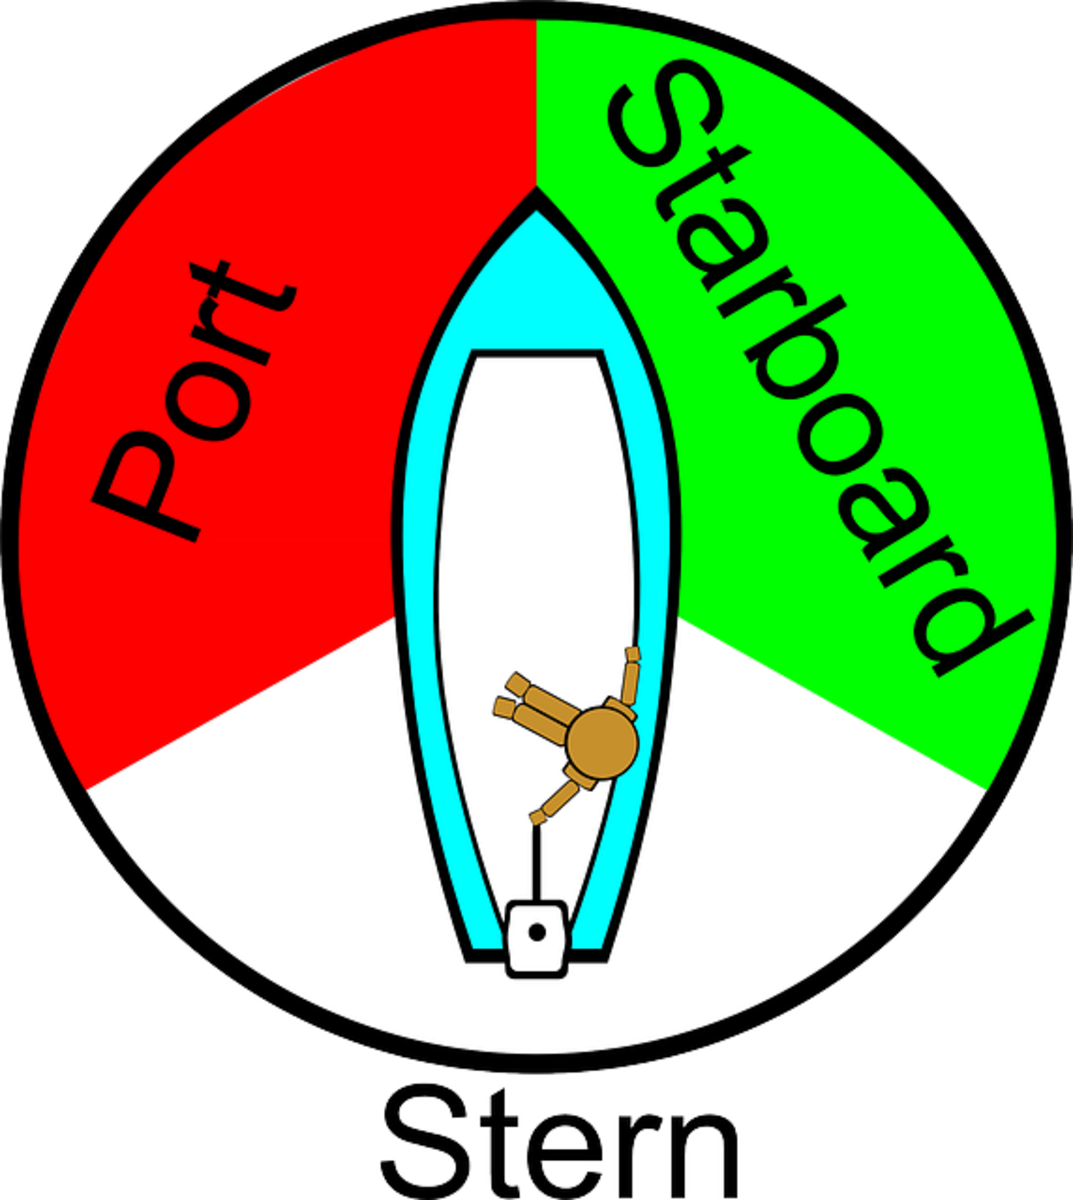 Port-Starboard diagram; lights are mounted to the bow, or to each respective side, but must be visible over the arc shown